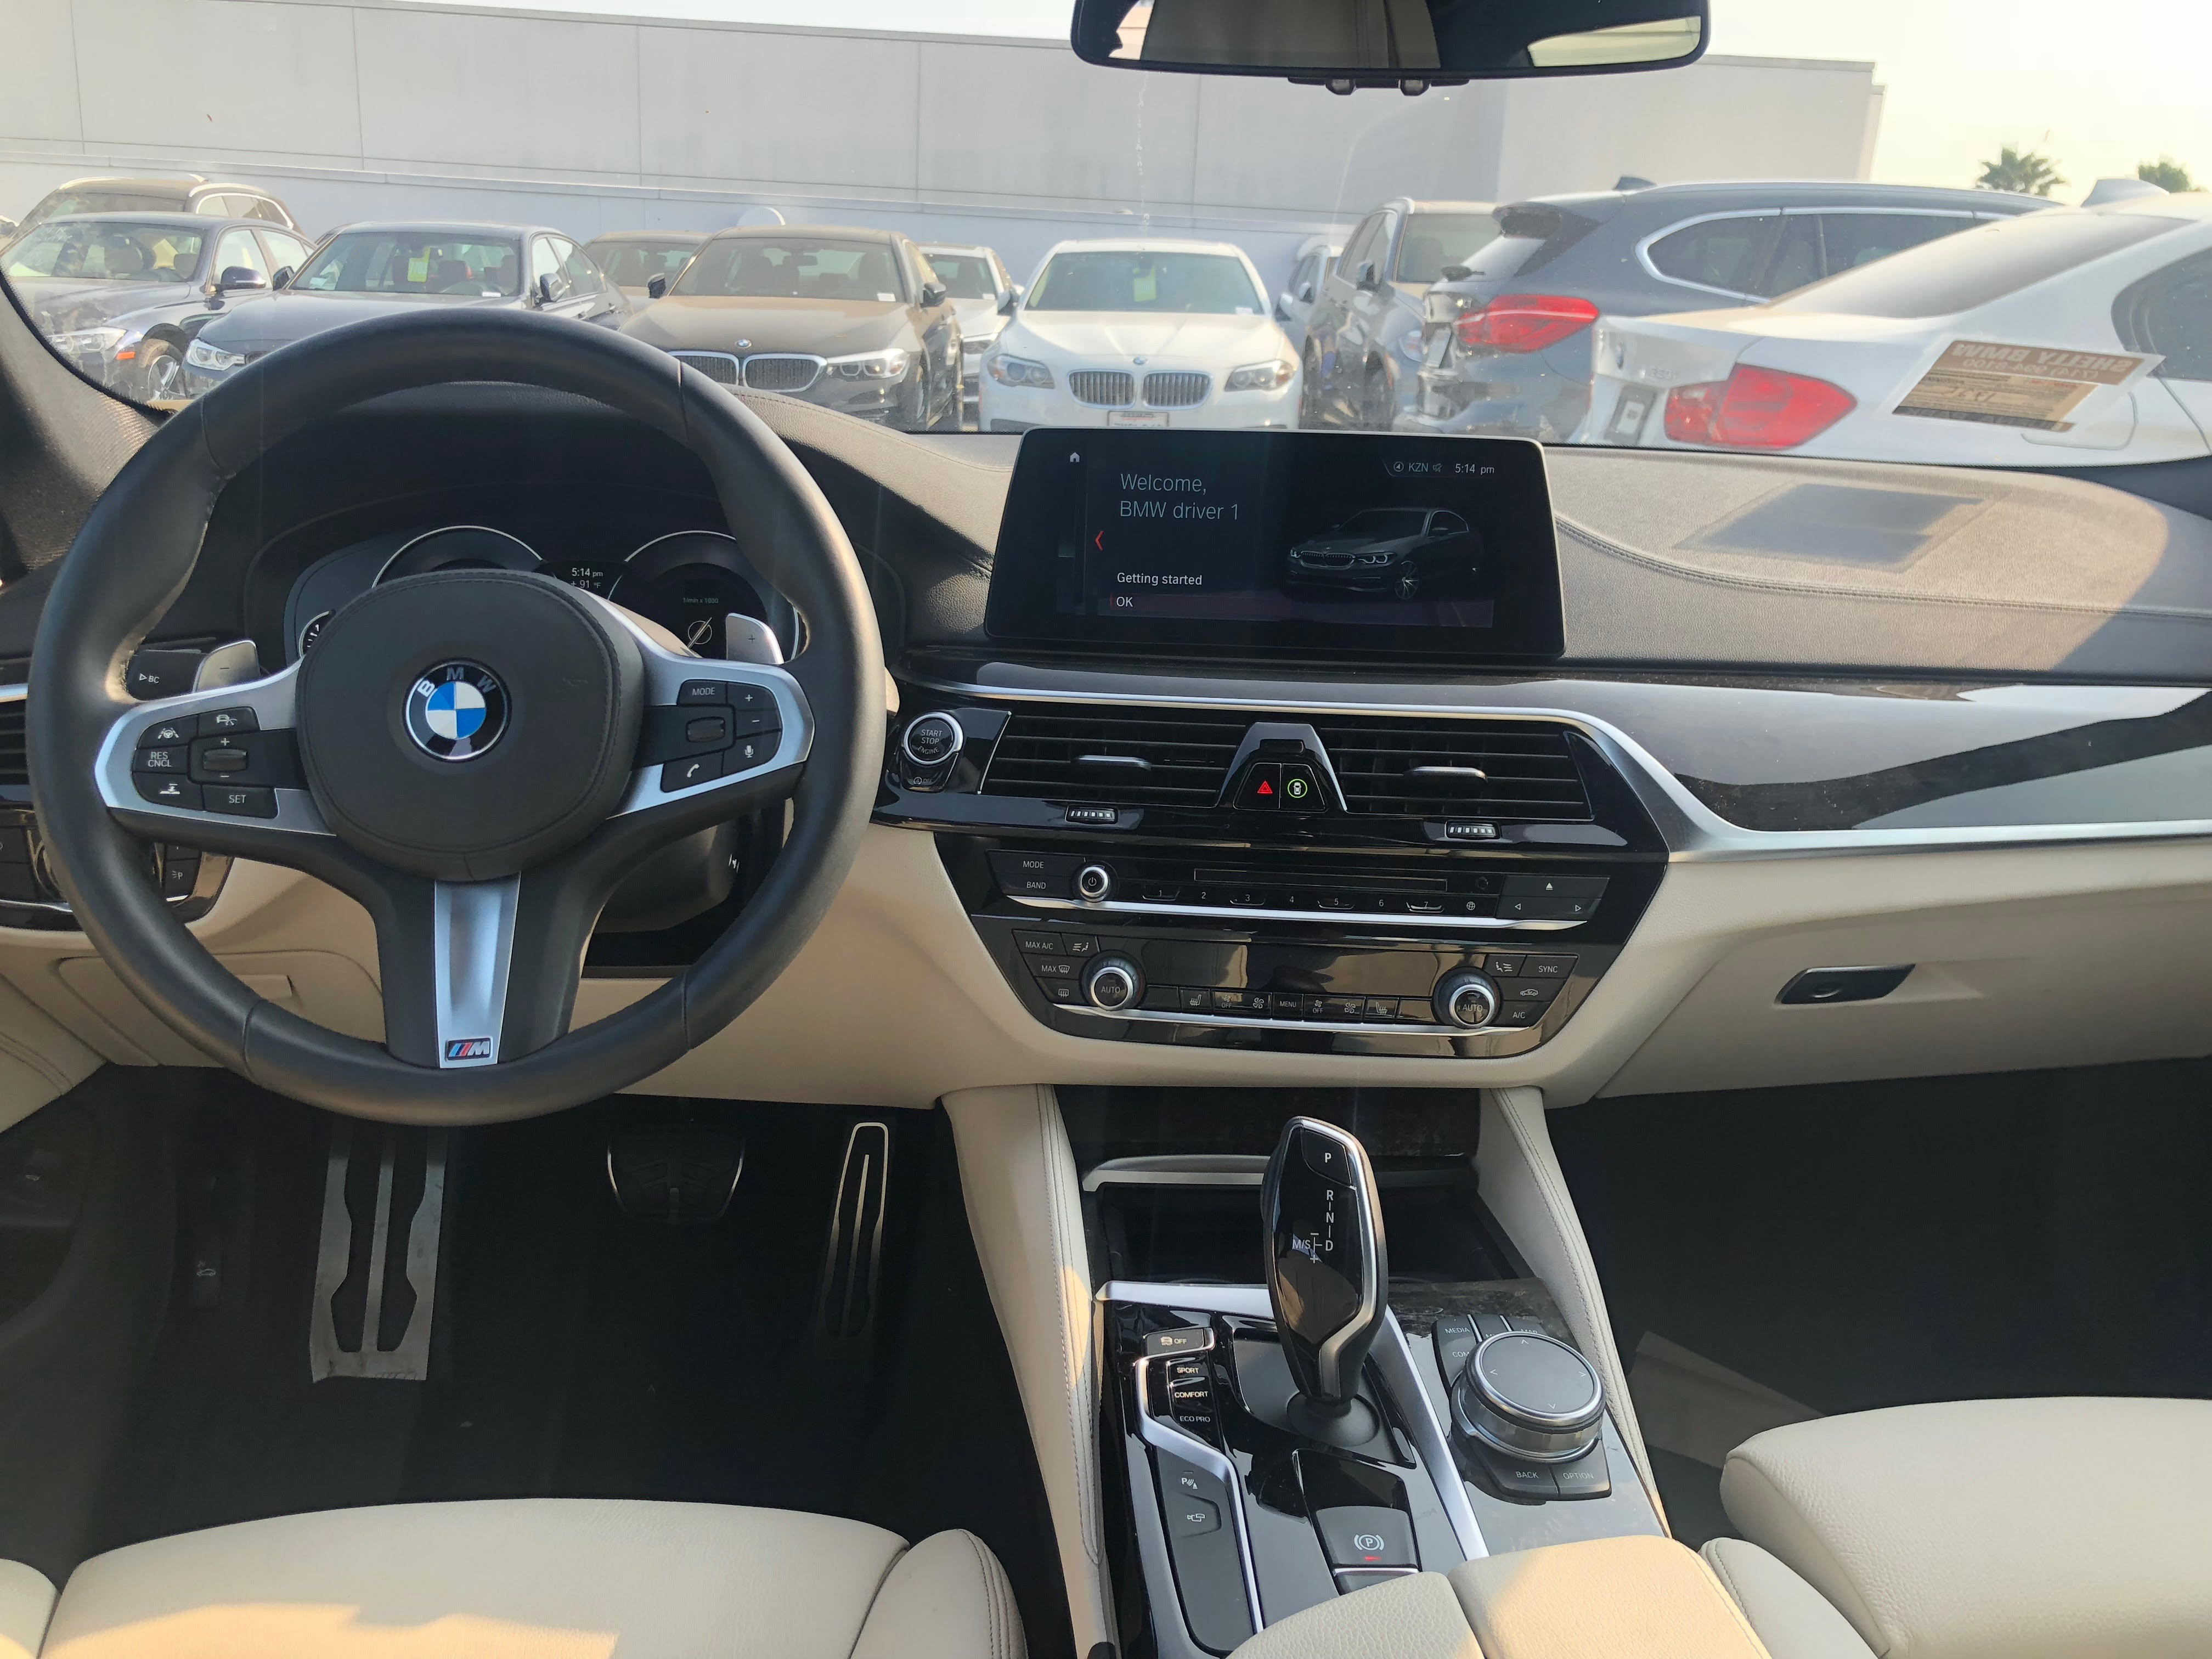 2018 Bmw 540i Lease Transfer Done Private Lease Transfers